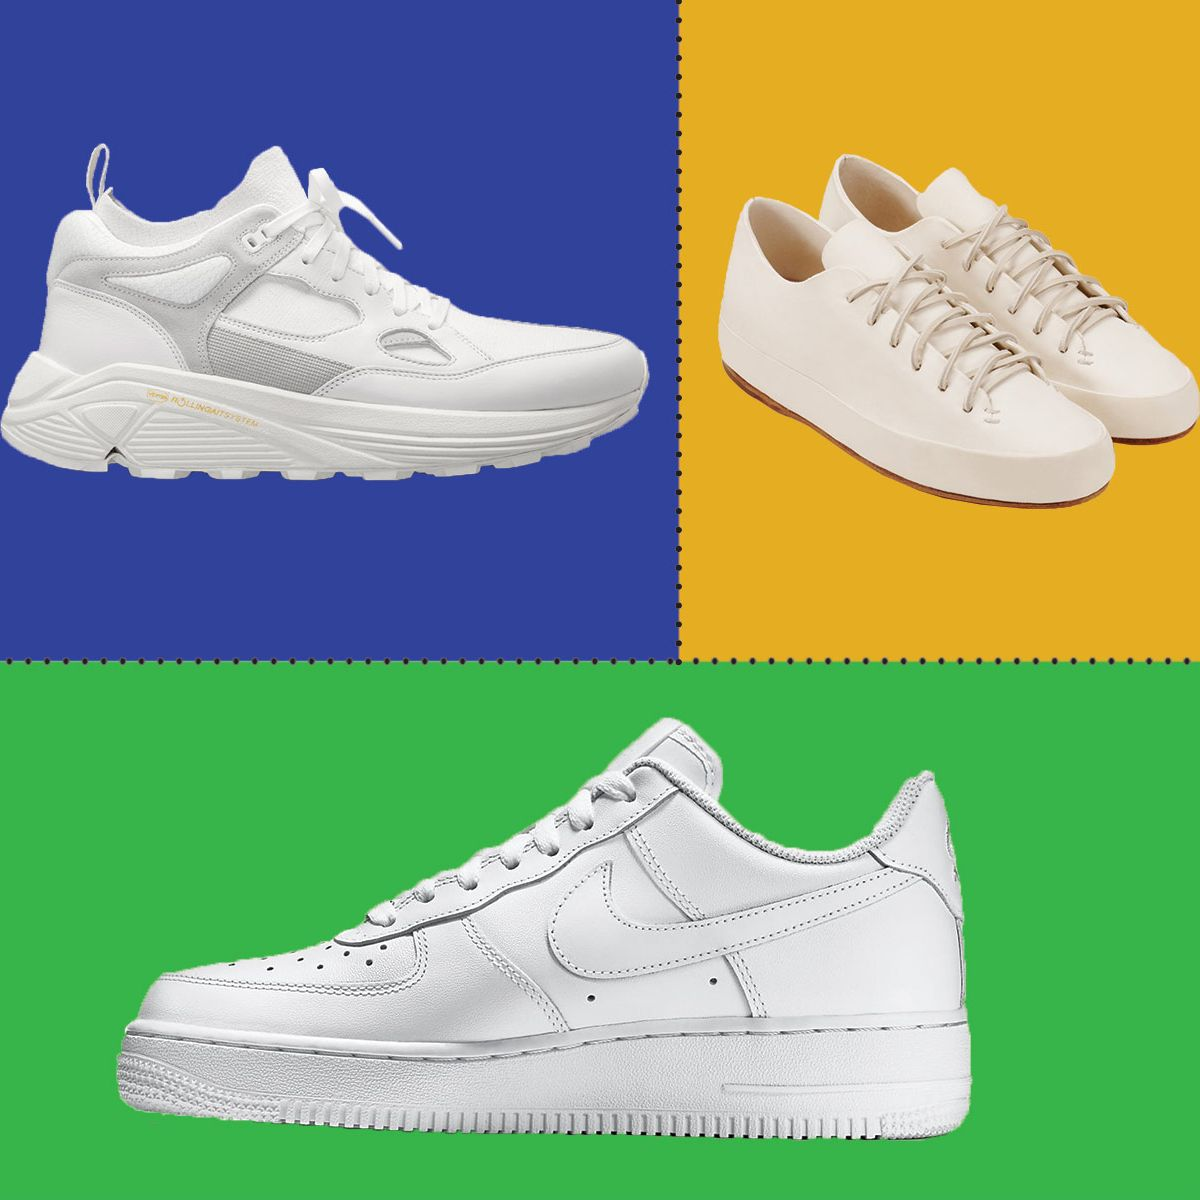 83d72a41a0cac5 15 Best White Sneakers for Women 2018